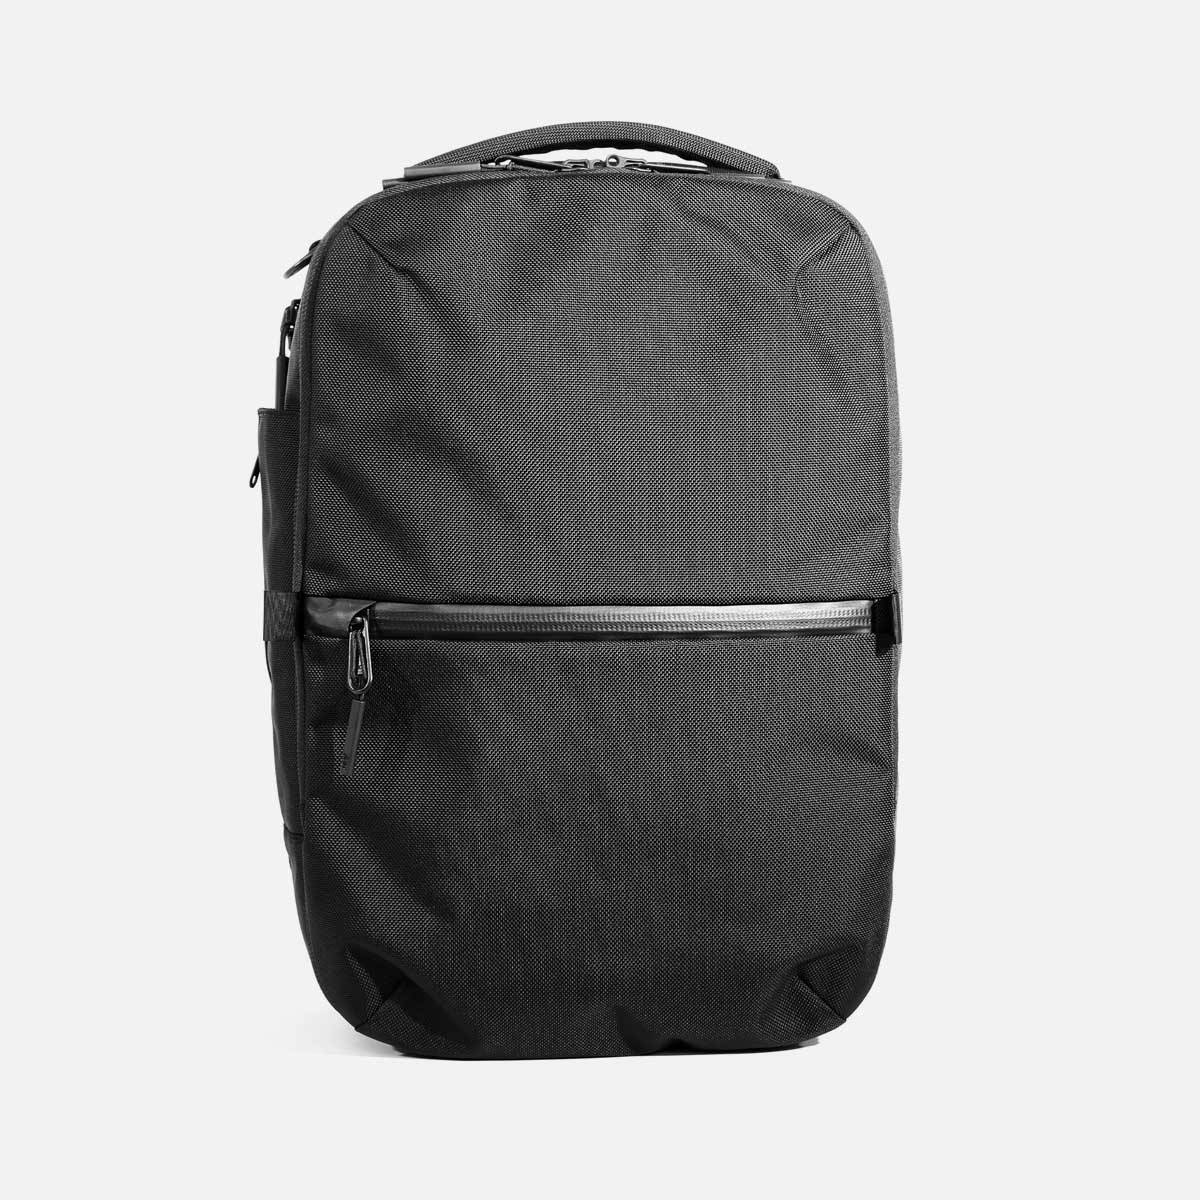 AER21022_travelpack2small_front.jpg